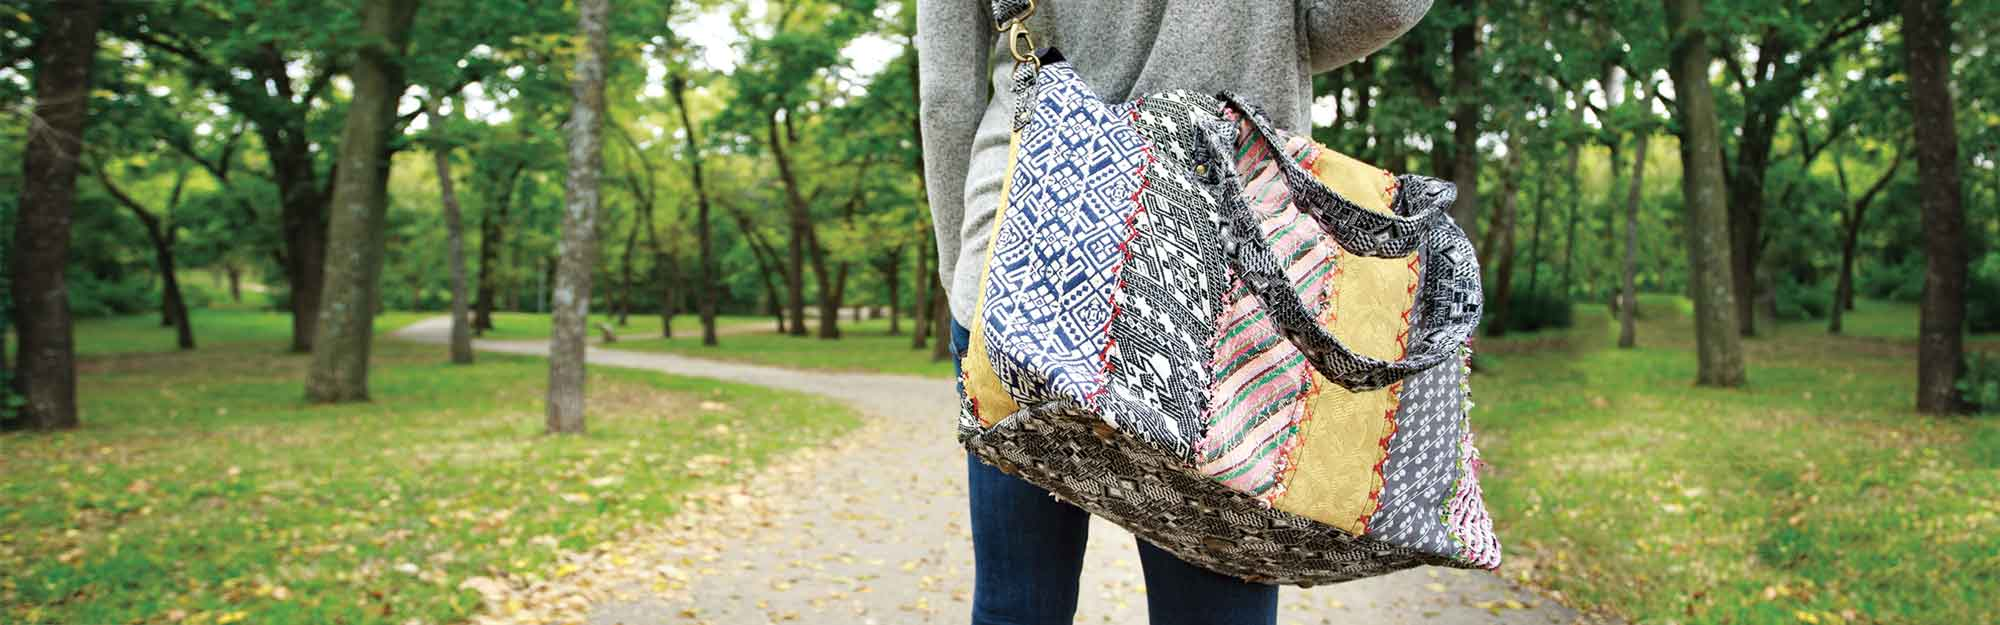 Woman walking down a wooded path carrying a colorful hand-stitched bag over her shoulder